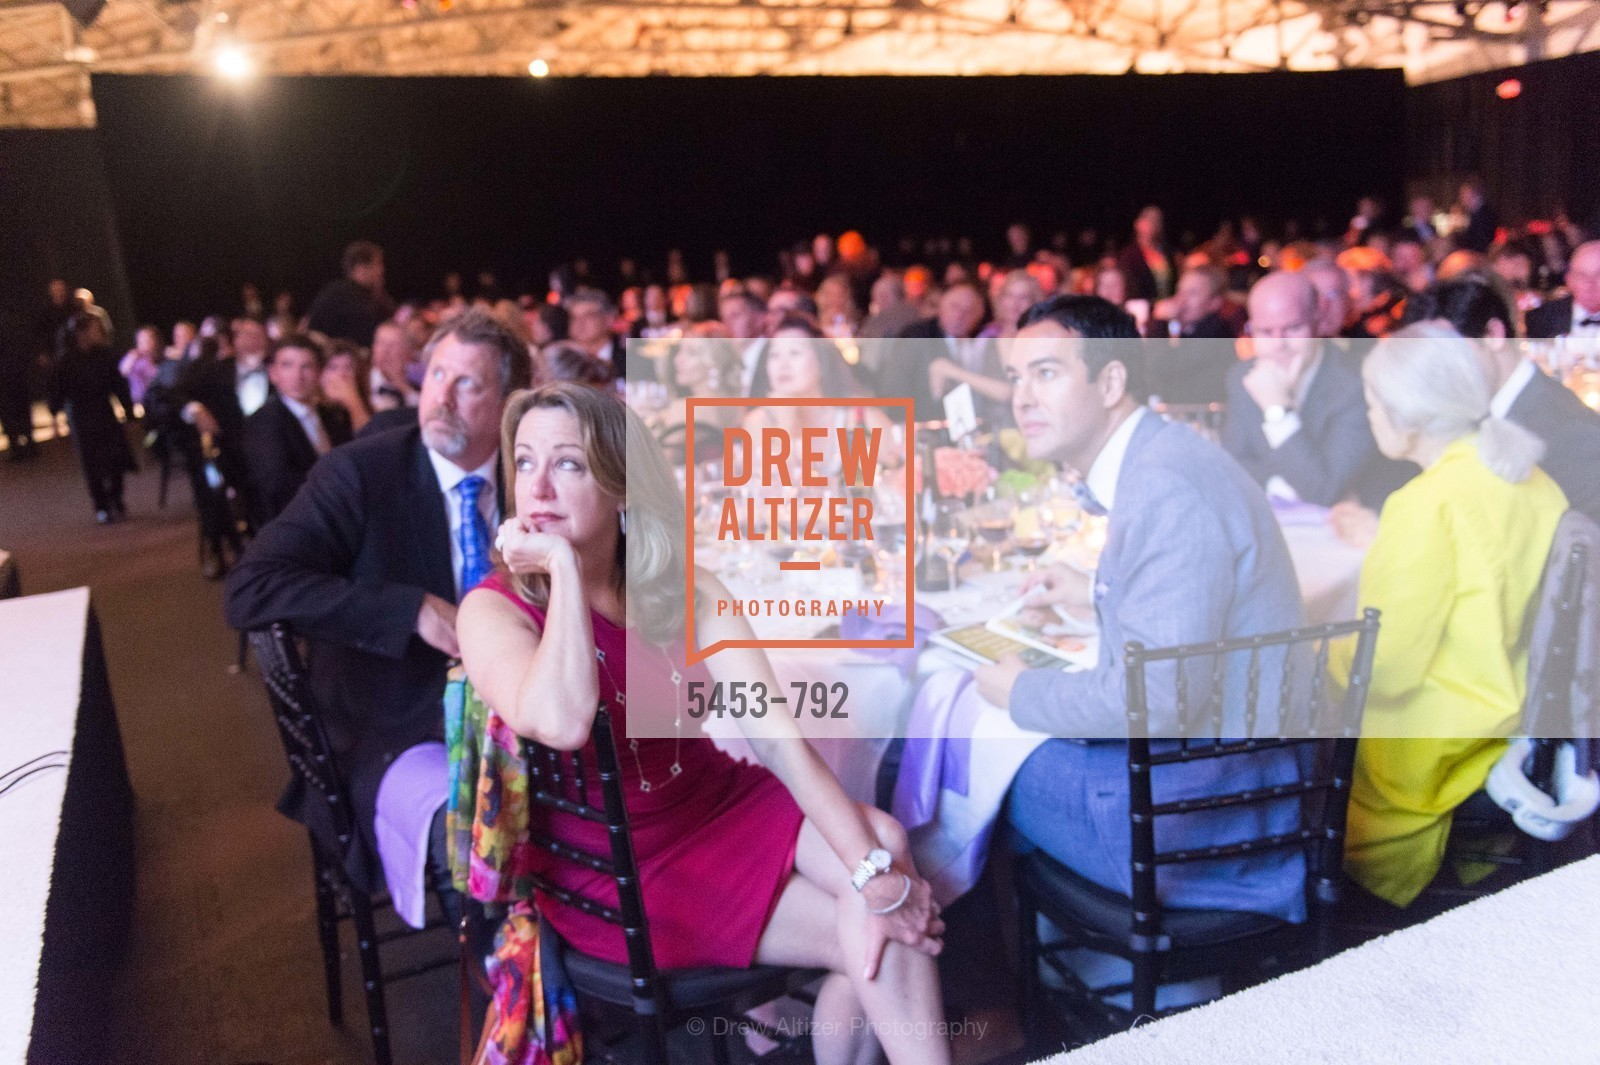 Top Picks, MEALS ON WHEELS OF SAN FRANCISCO'S 28th Annual Star Chefs and Vintners Gala, April 19th, 2015, Photo,Drew Altizer, Drew Altizer Photography, full-service agency, private events, San Francisco photographer, photographer california